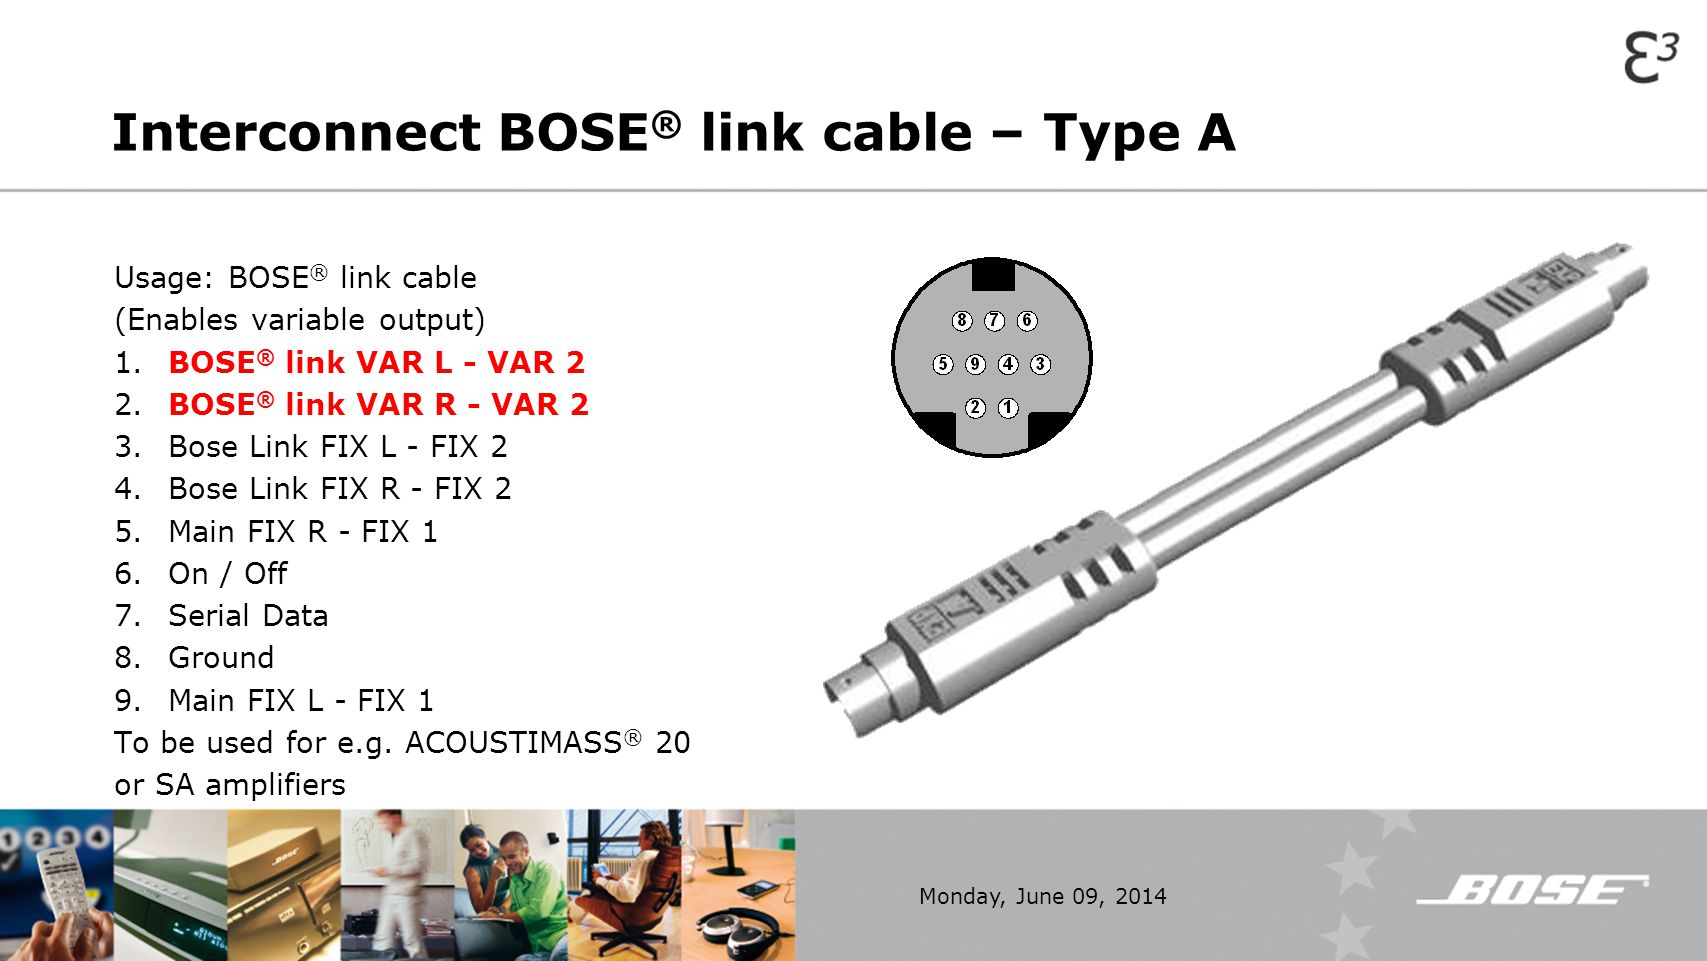 bose-acoustim-9-wiring-diagram-4  Pin Din Cable Wiring Diagram on 8 pin ribbon cable connector, 8 pin din male connector to ethernet cable, 8 pin din connector pin numbers, 8 pin din to 3 5mm plug wiring, 8 pin trailer wiring diagram,